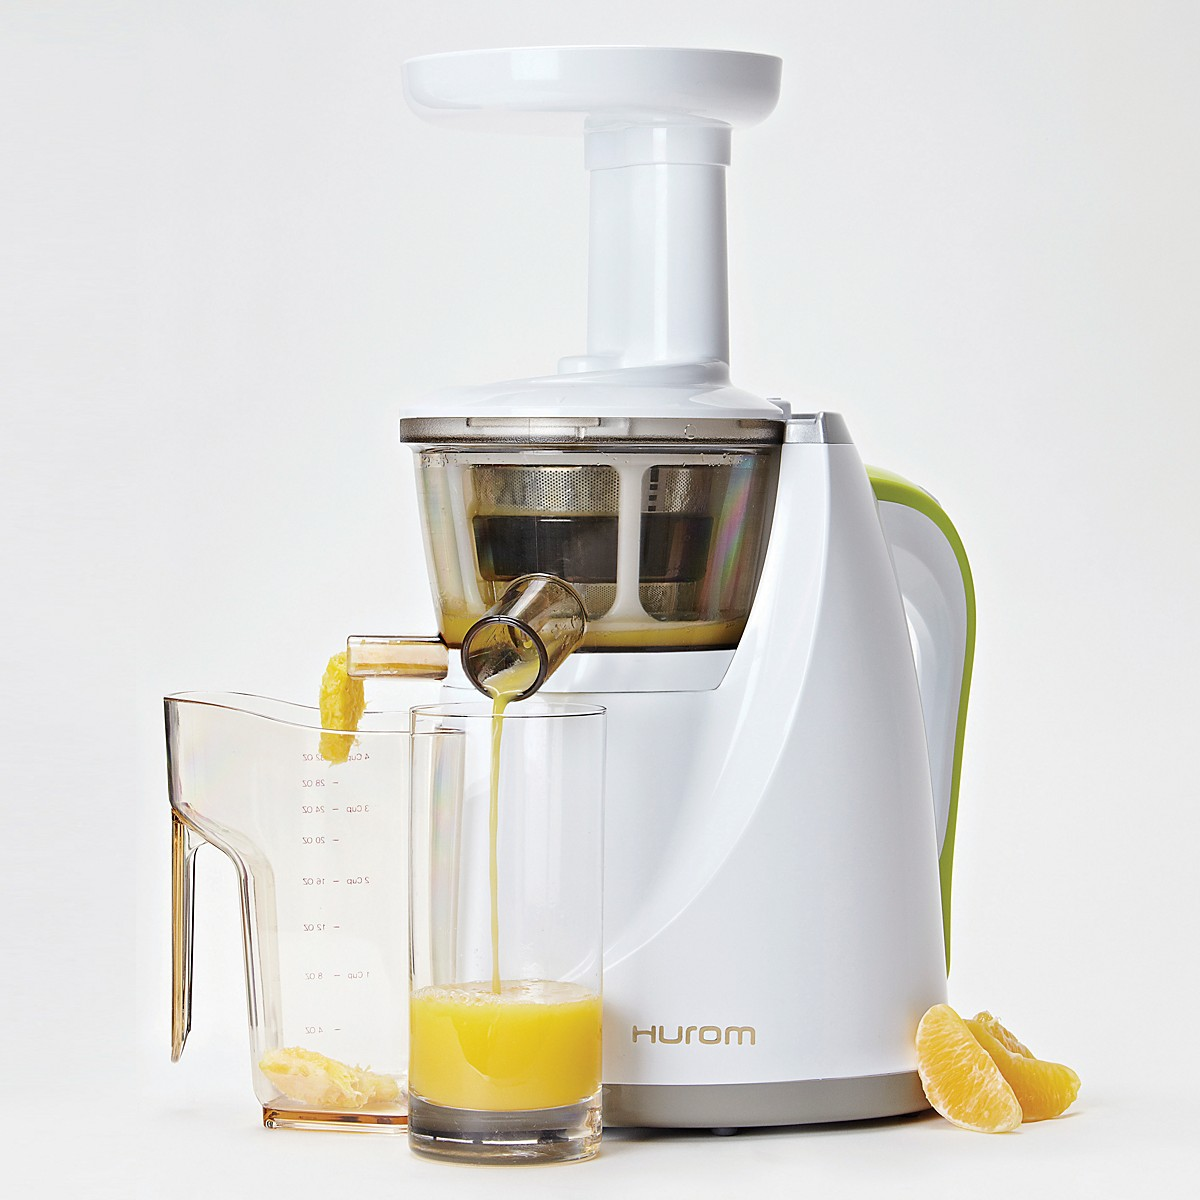 Hurom Slow Juicer Images : The Wish List 2014 Our favourite kitchen appliances for chefs and avid home cooks